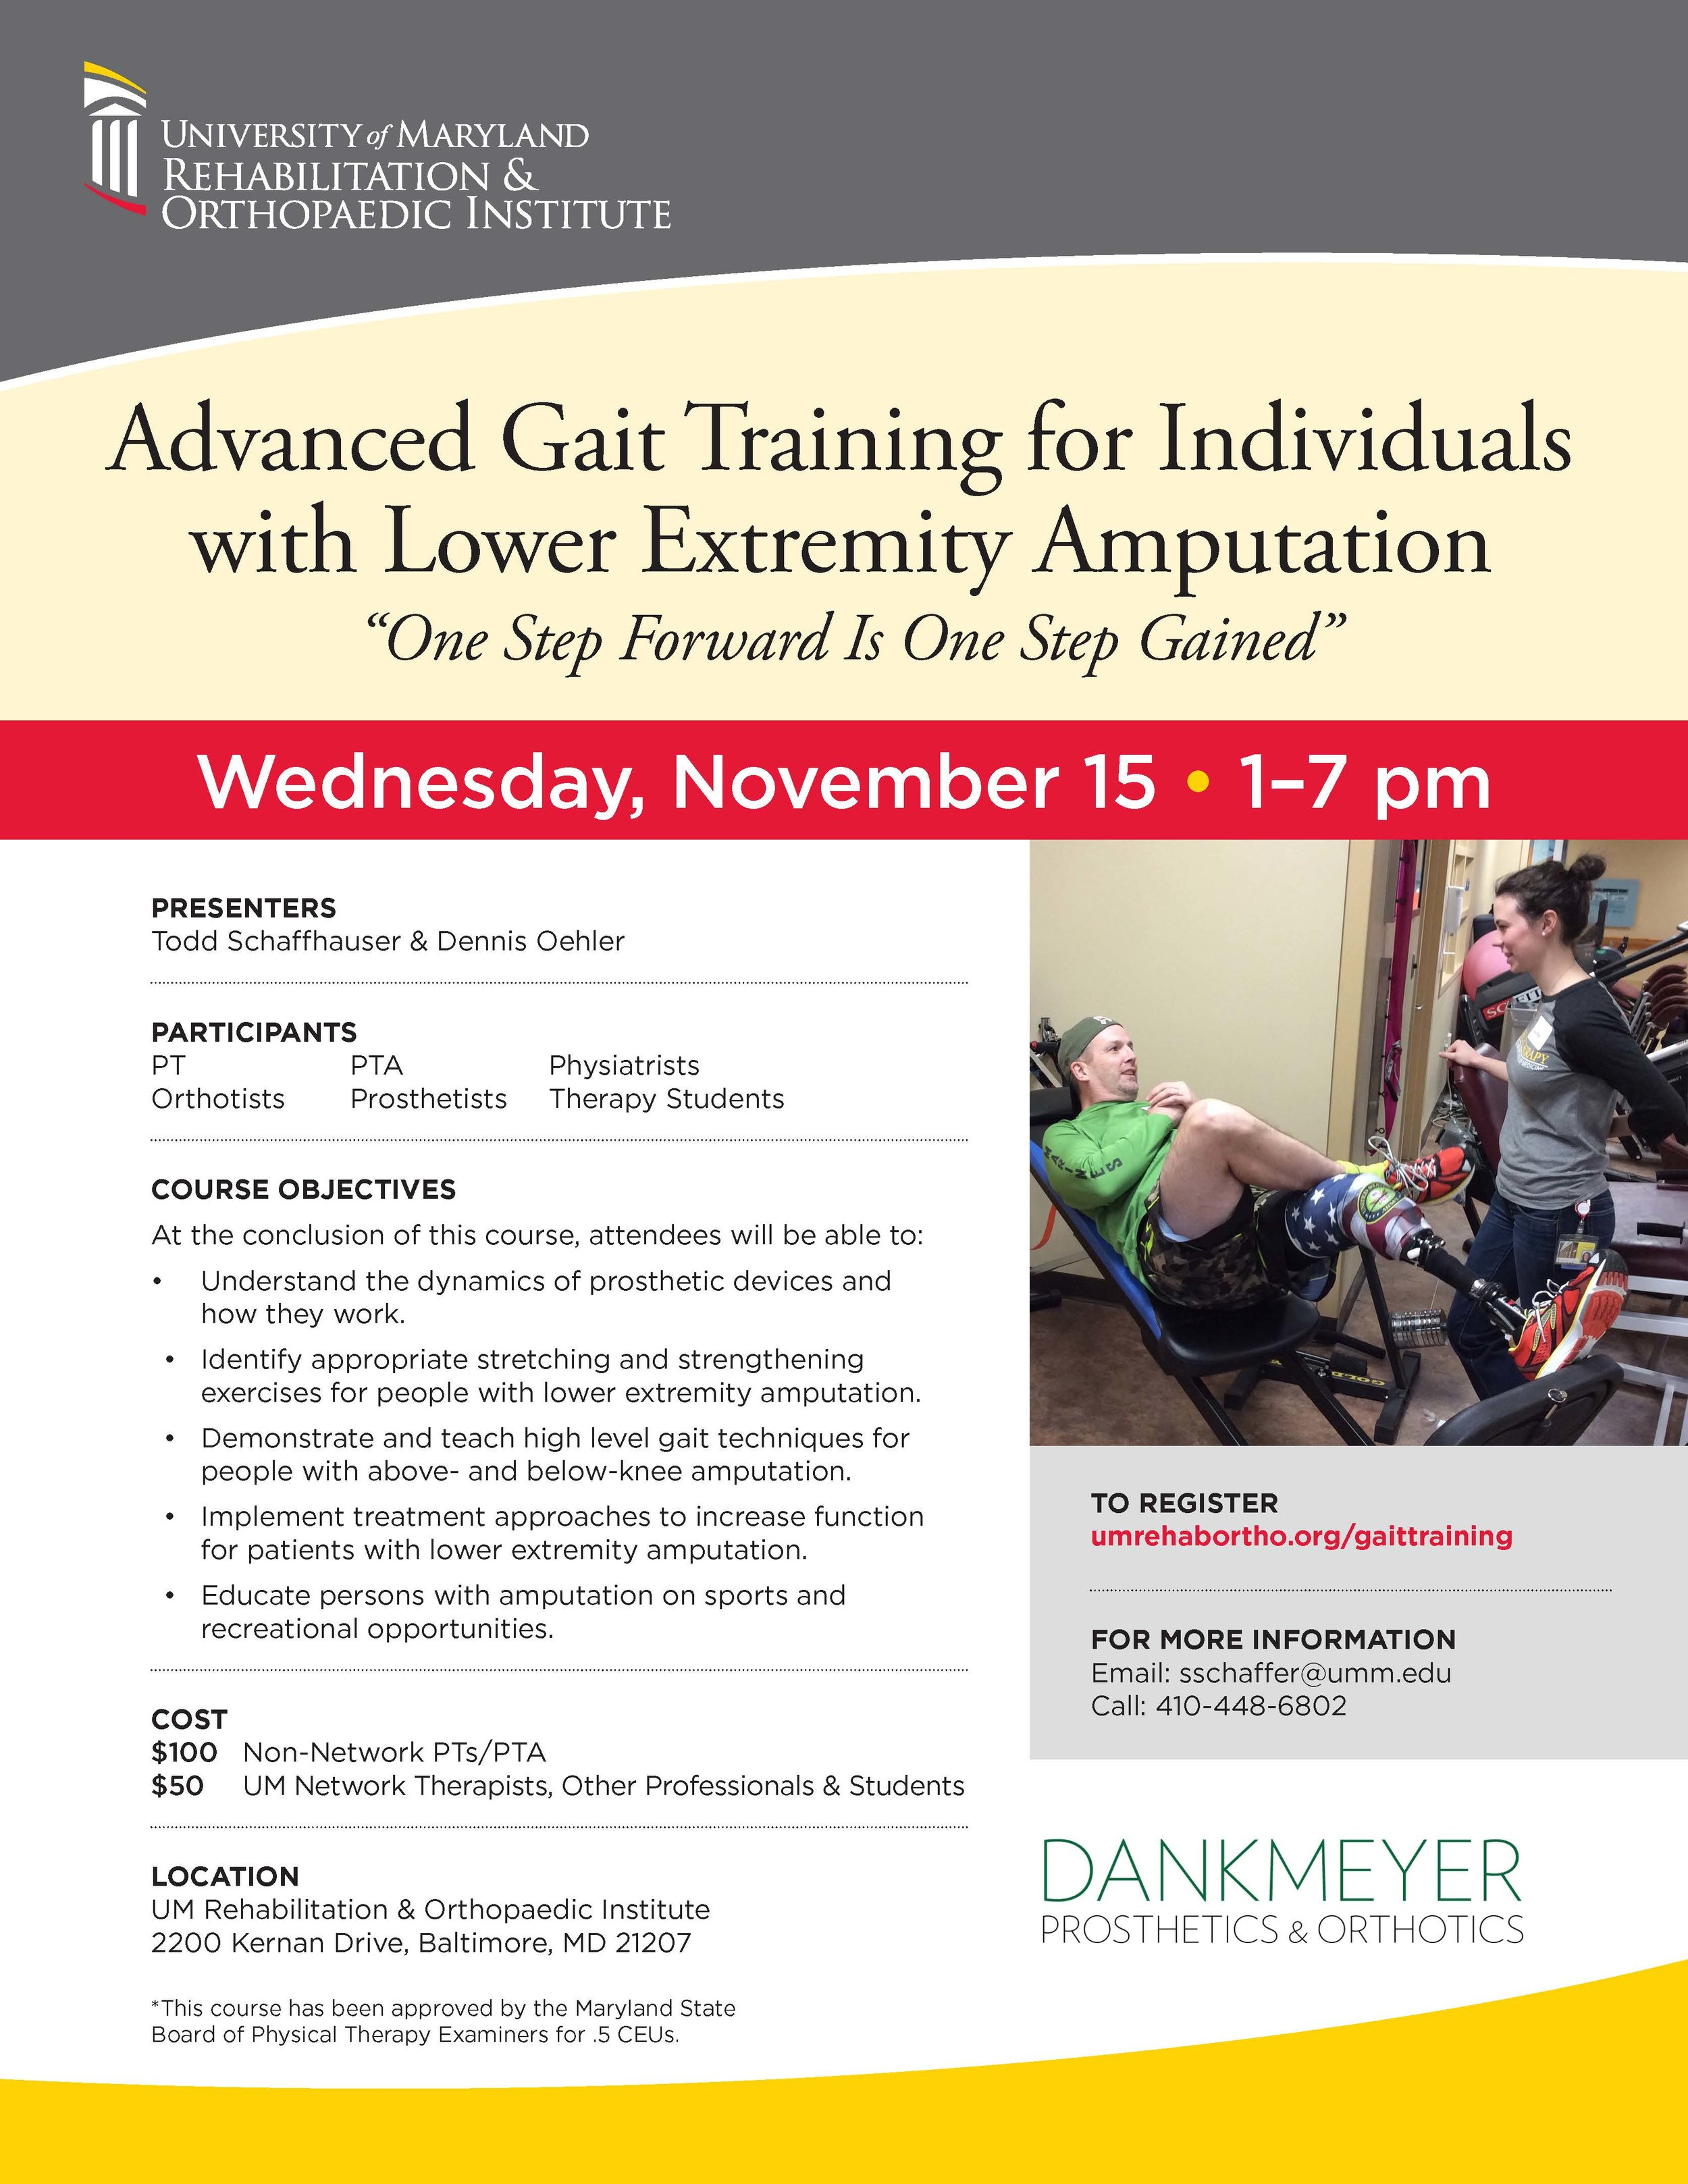 Continuing Education Opportunity! — Dankmeyer, Inc